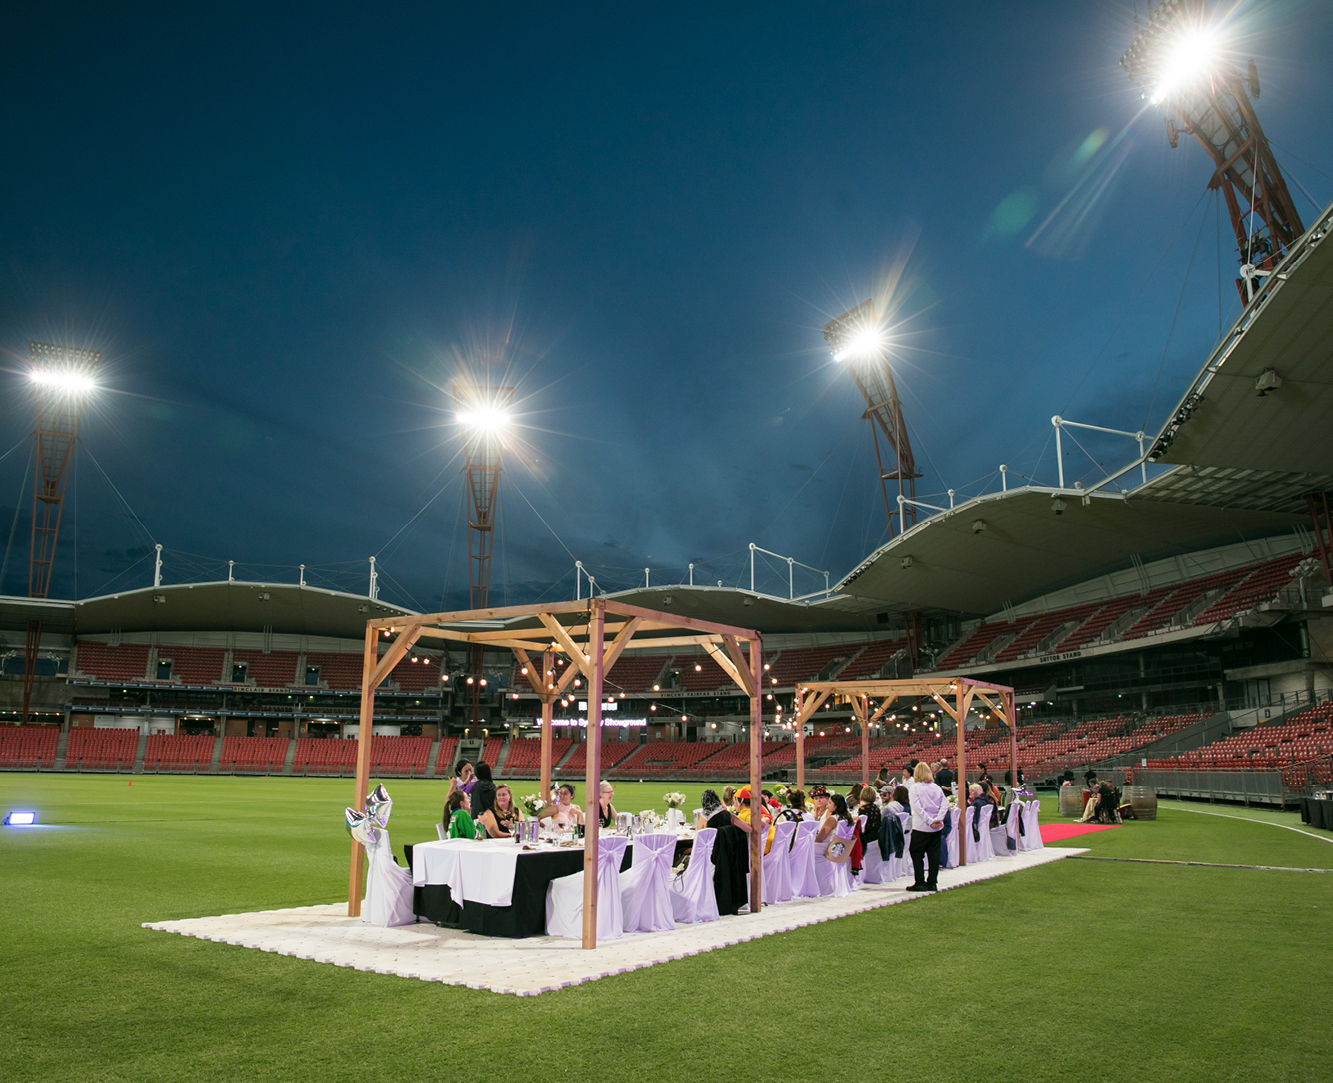 A Night Under the Stars at Spotless Stadium